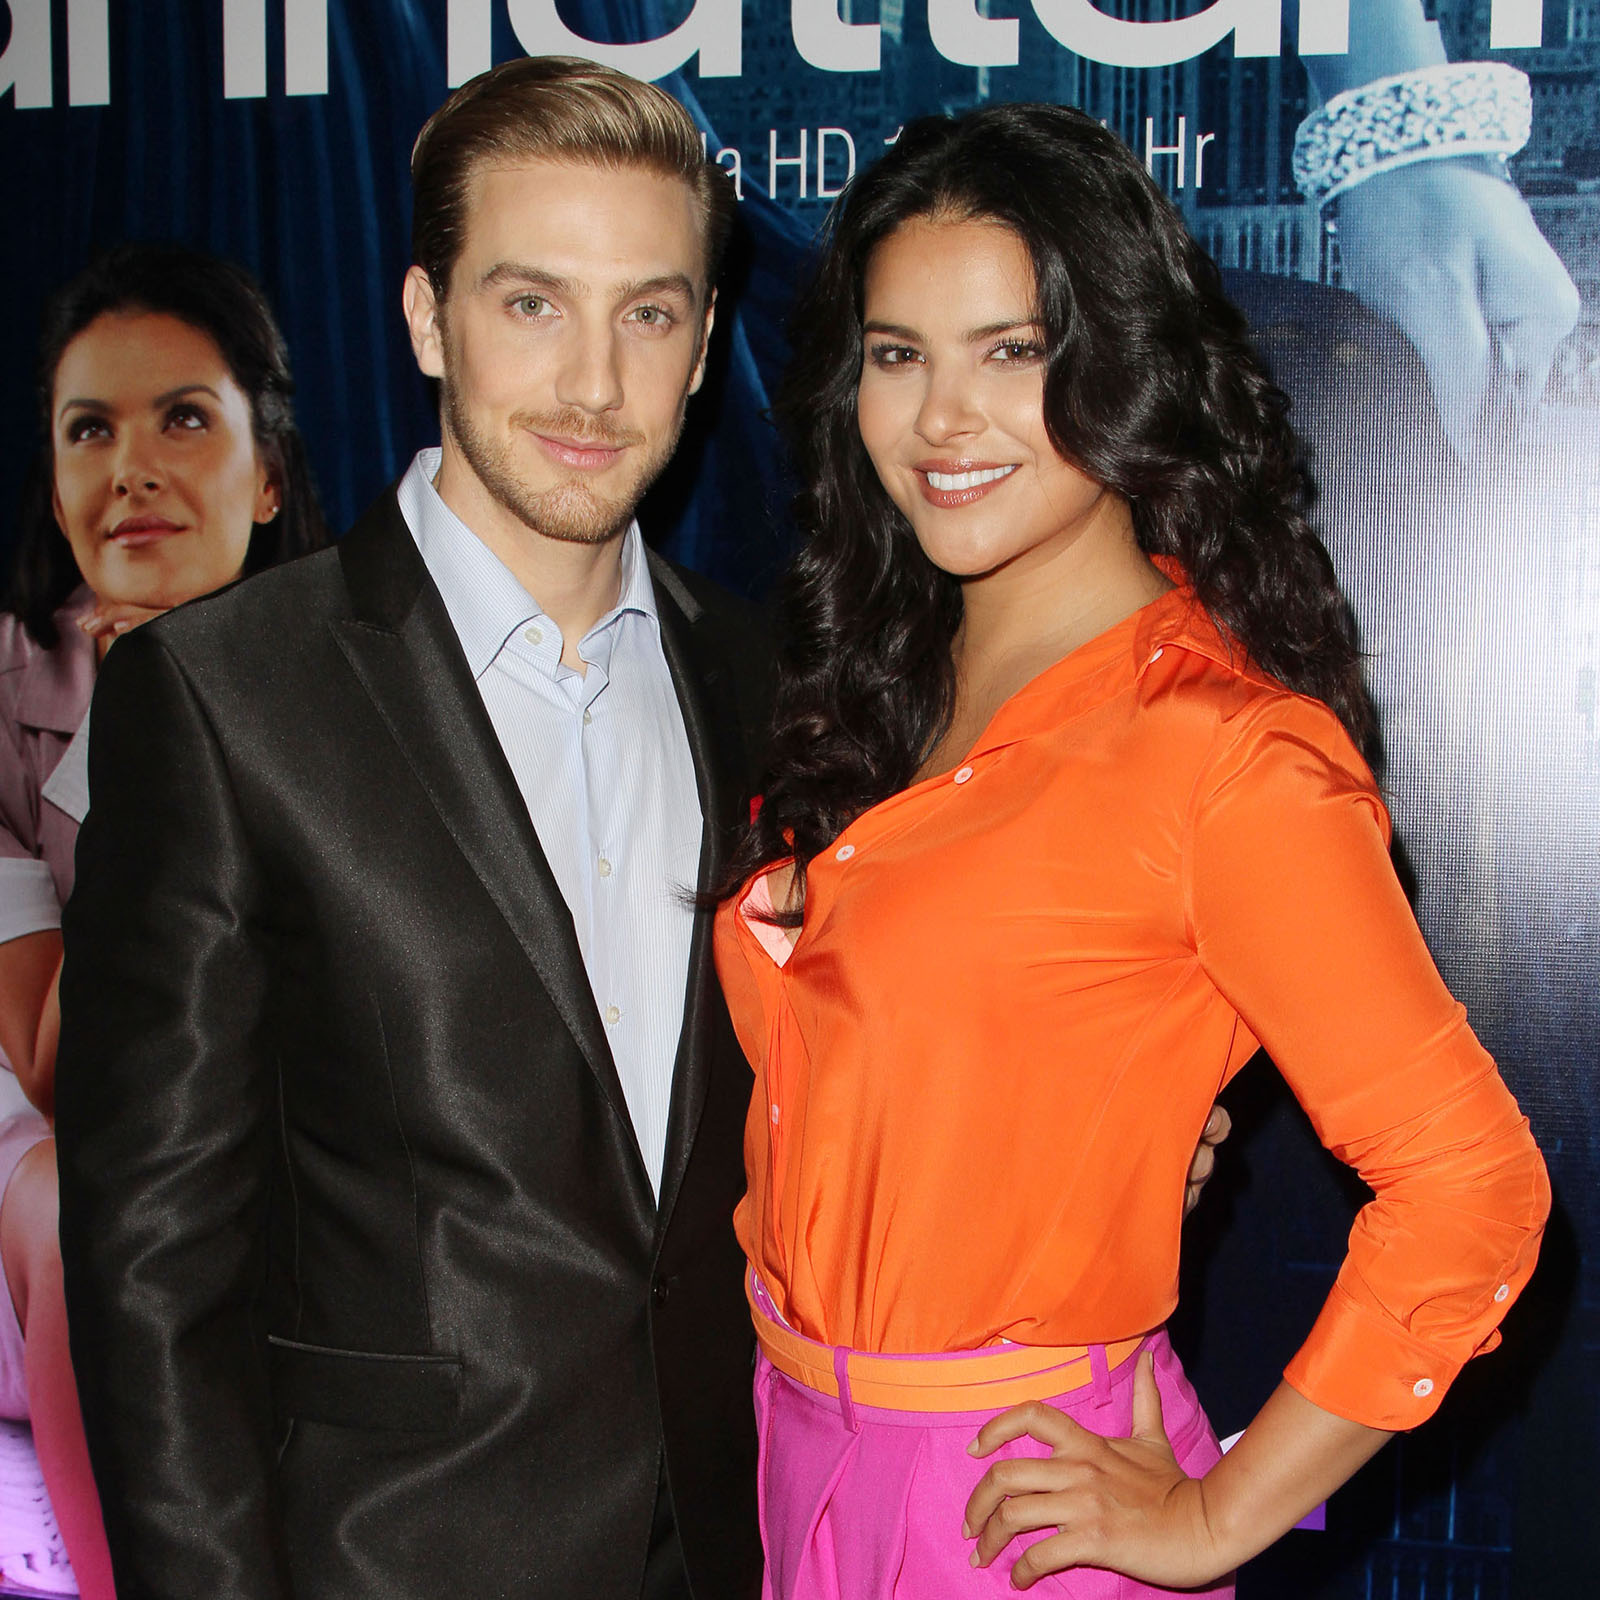 Eugenio Siller and Litzy